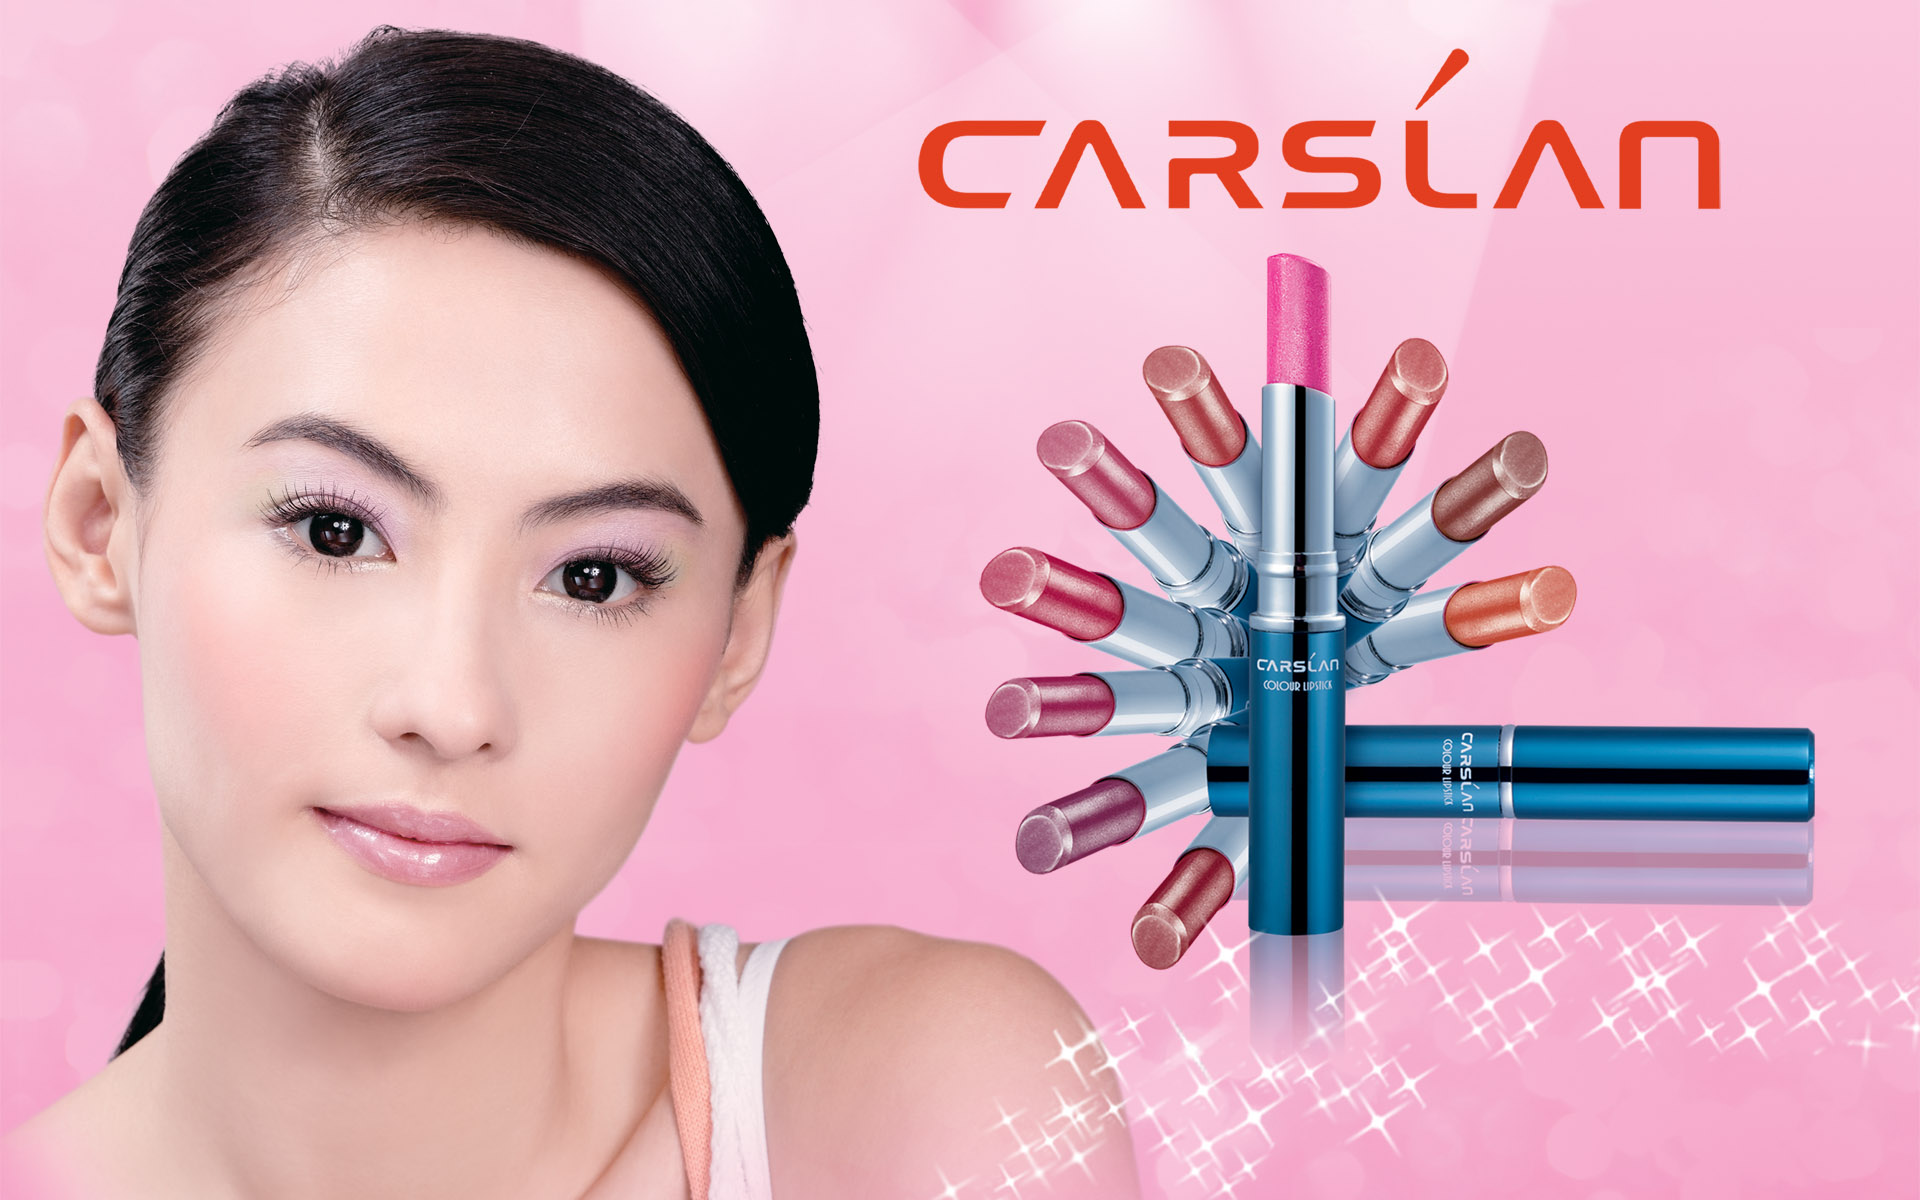 HD cosmetics ads wallpaper 4540 - Cosmetic advertising - Brand